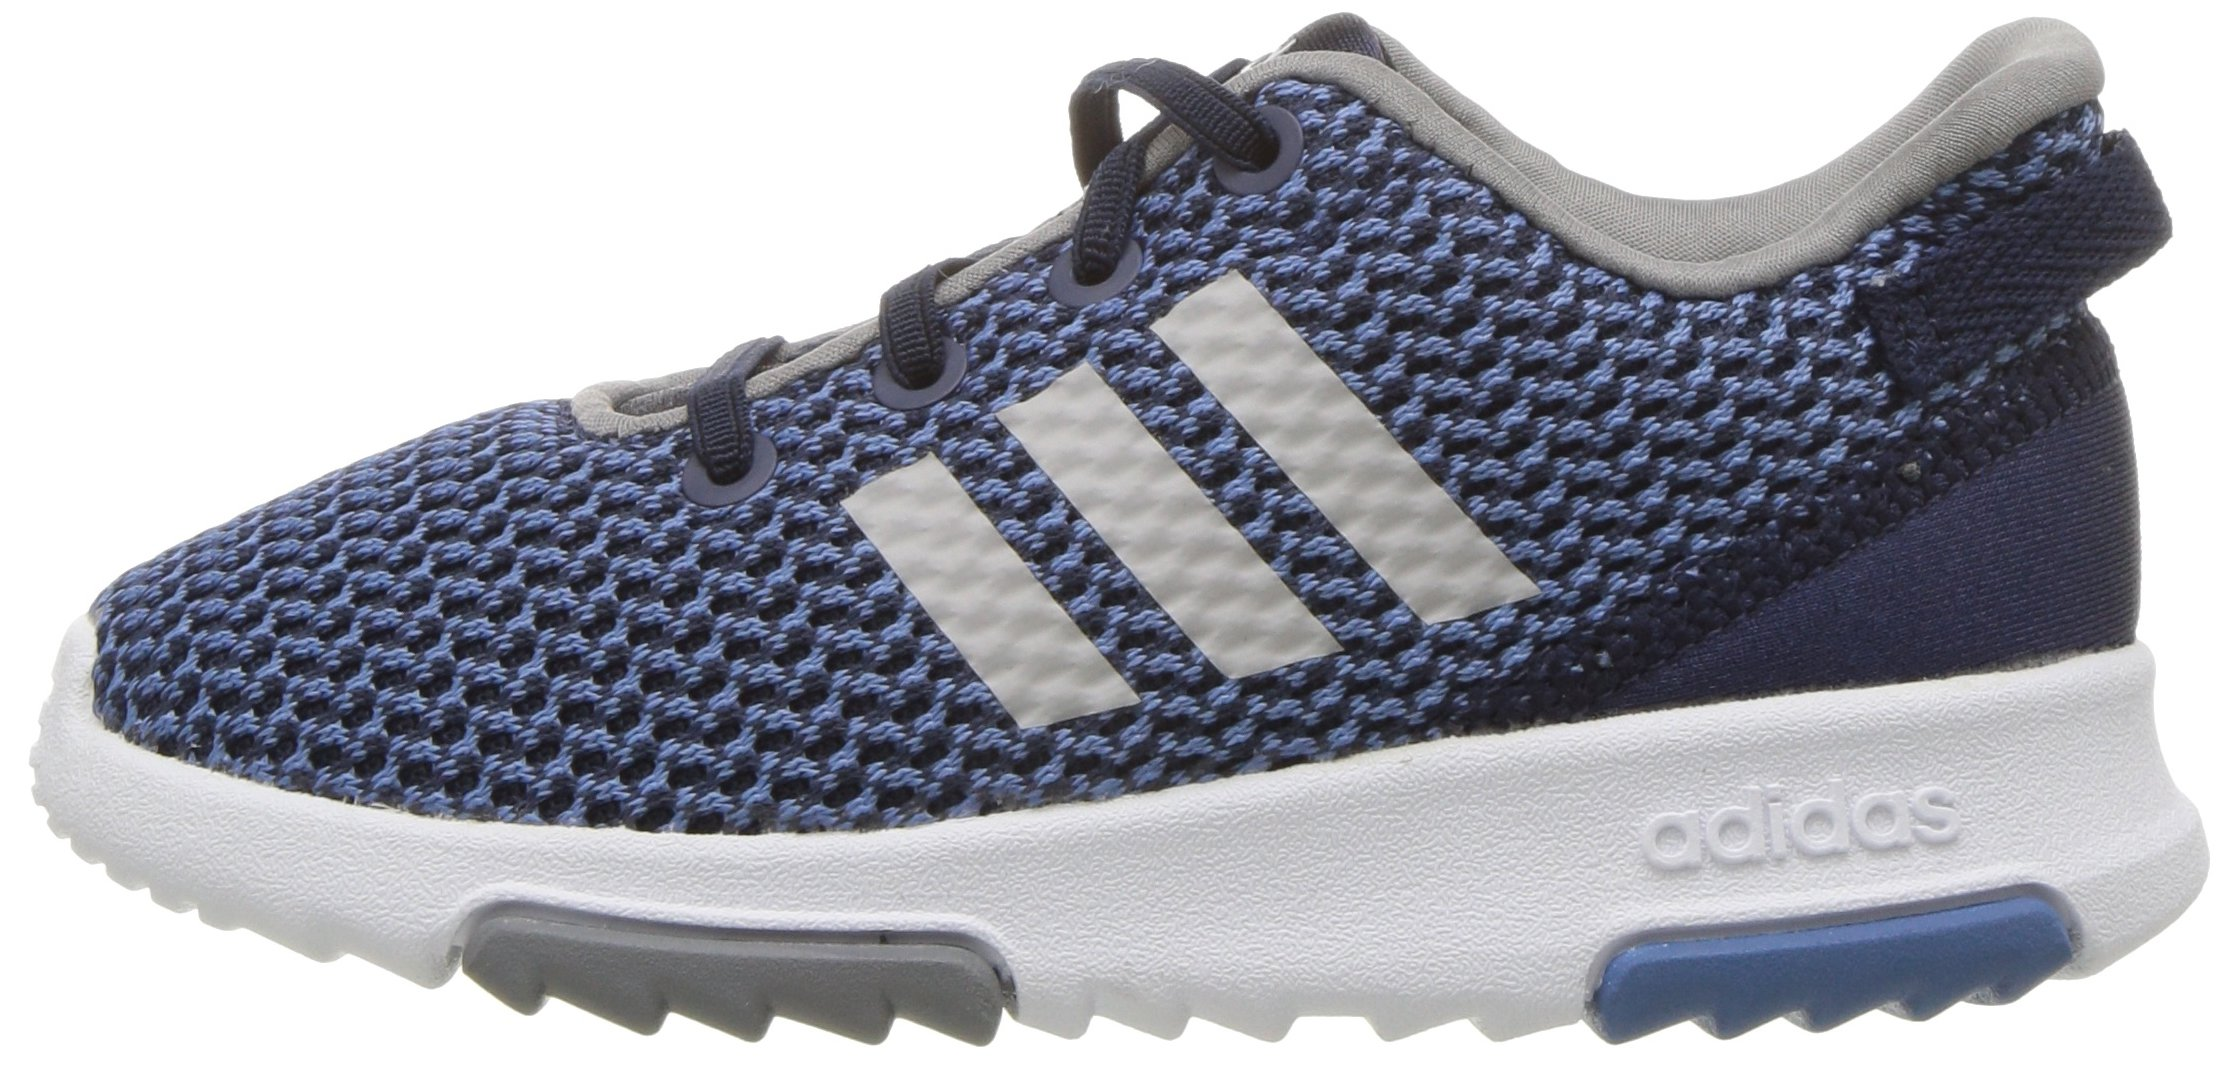 adidas Kids CF Racer TR Running Shoe, Collegiate Navy/Collegiate Navy/Grey, 5K M US Toddler by adidas (Image #5)